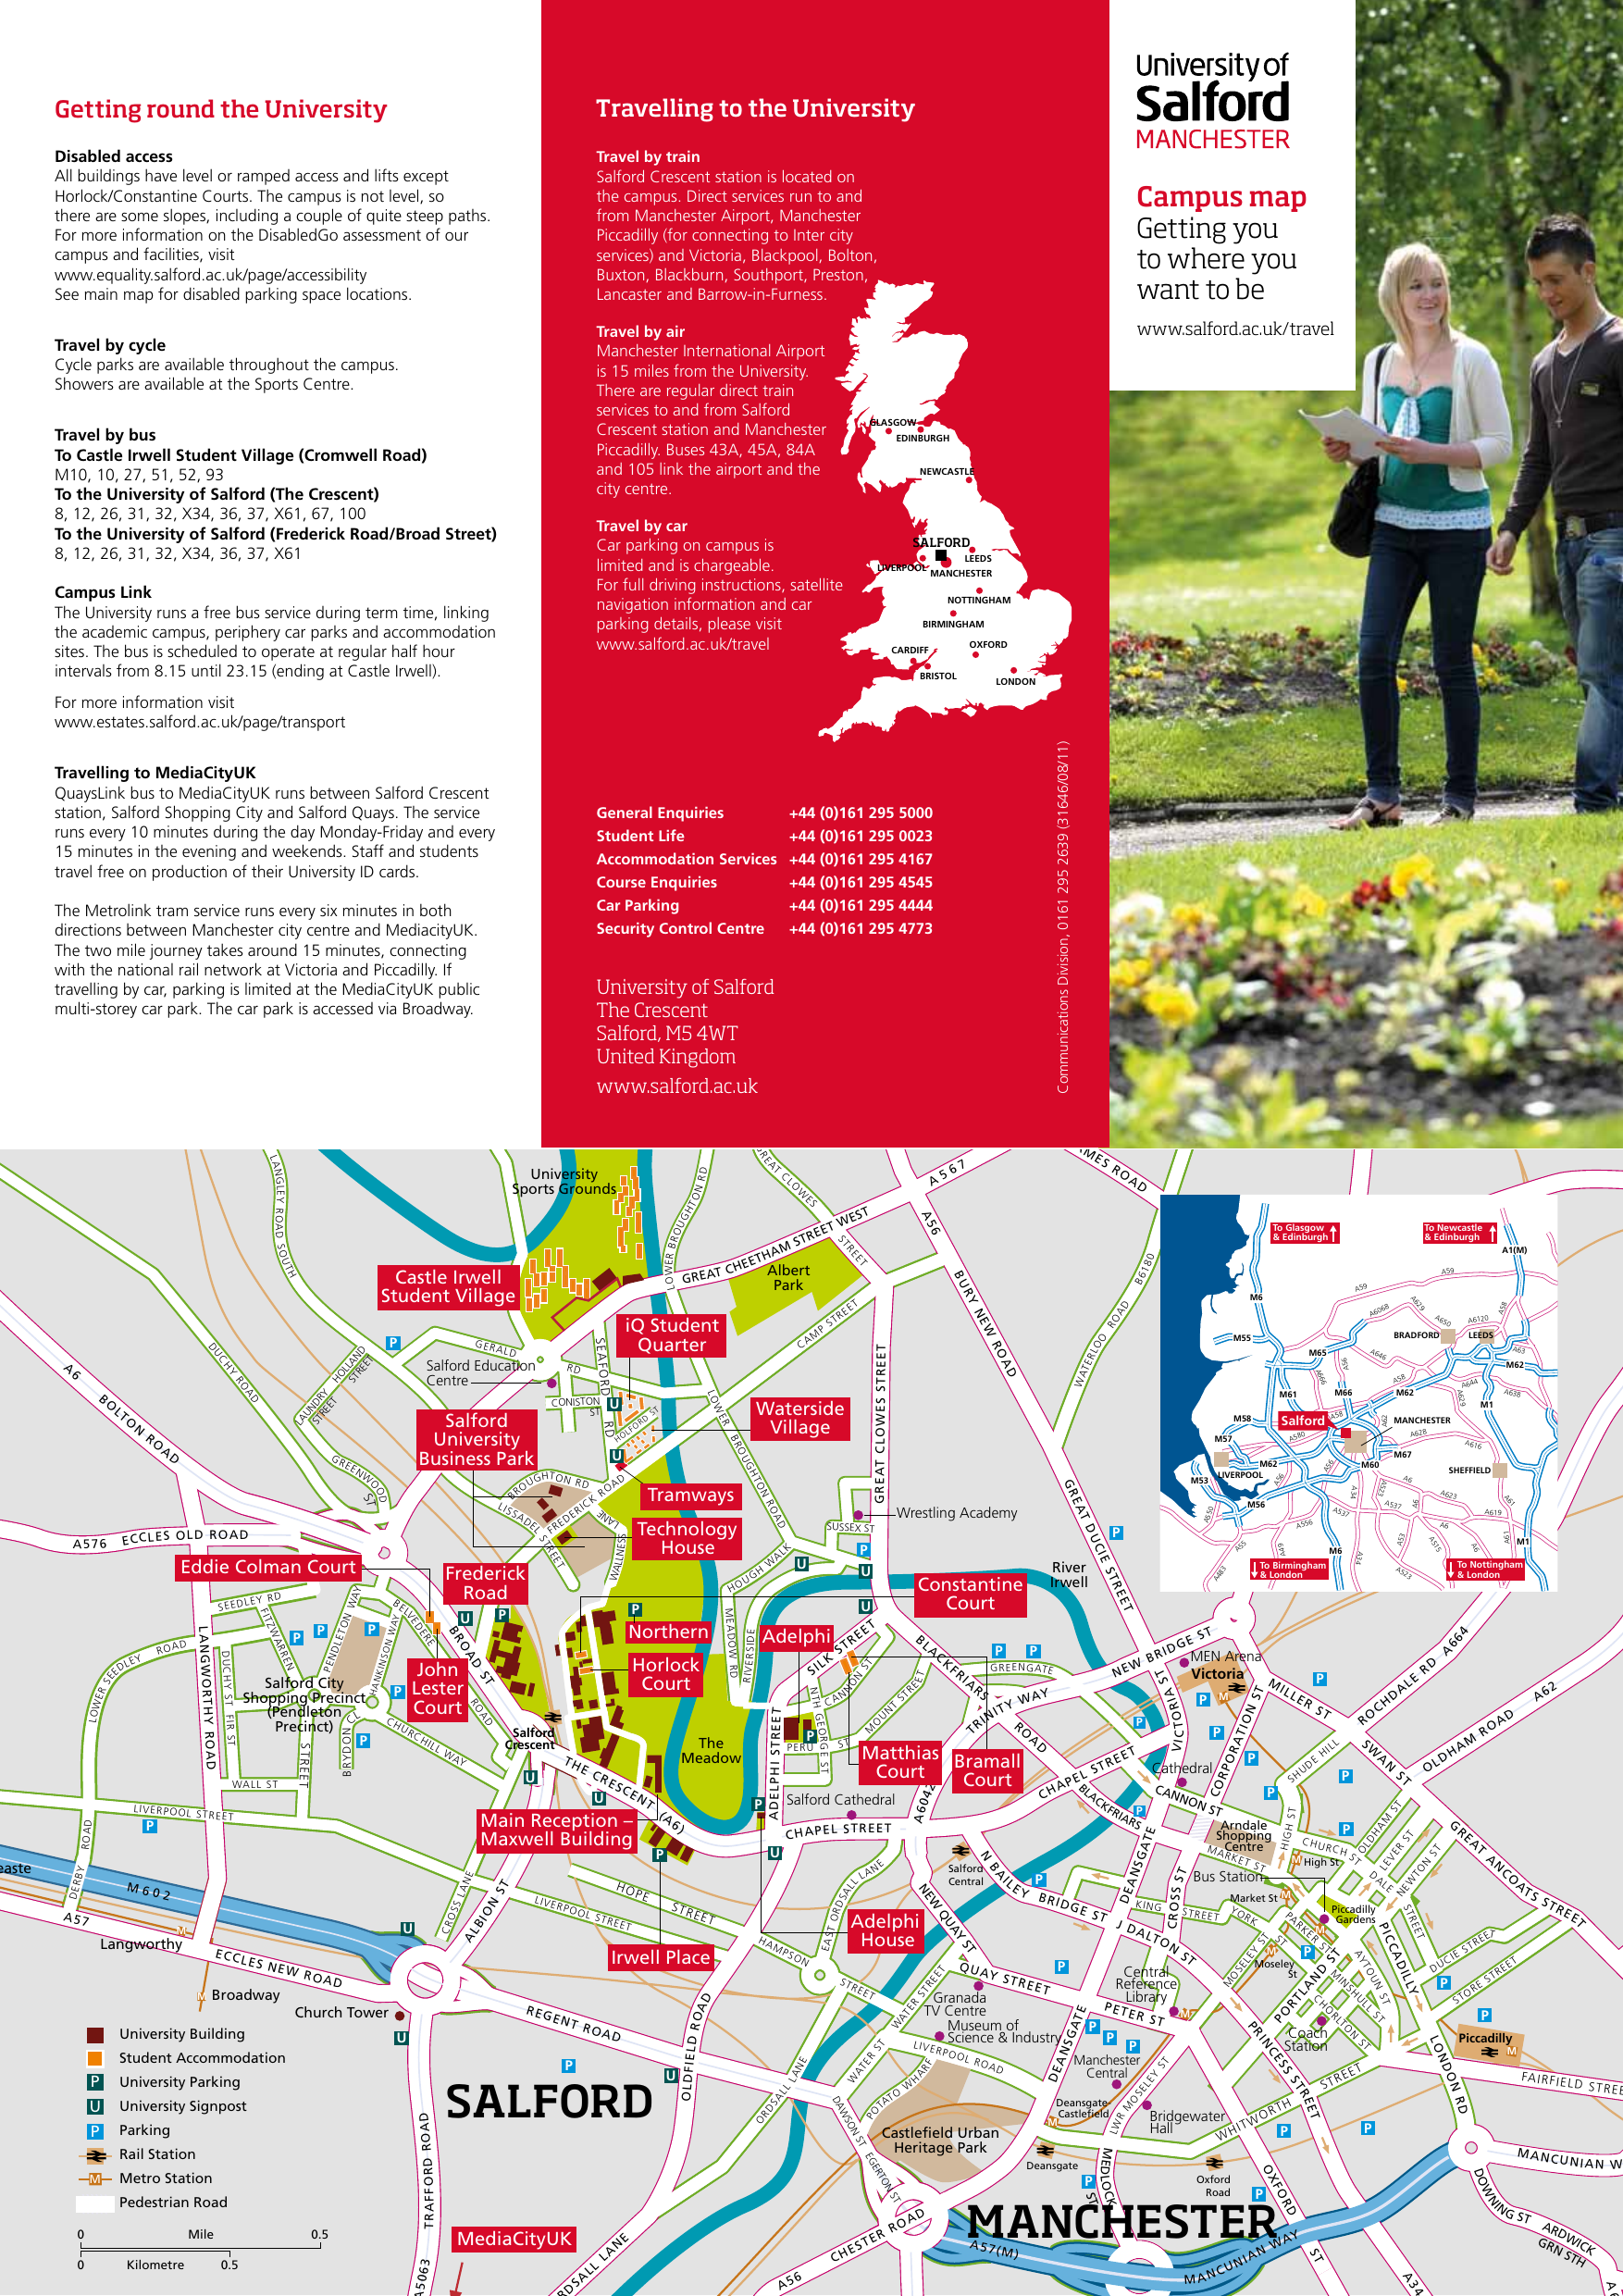 University Of Salford Campus Map And Guide